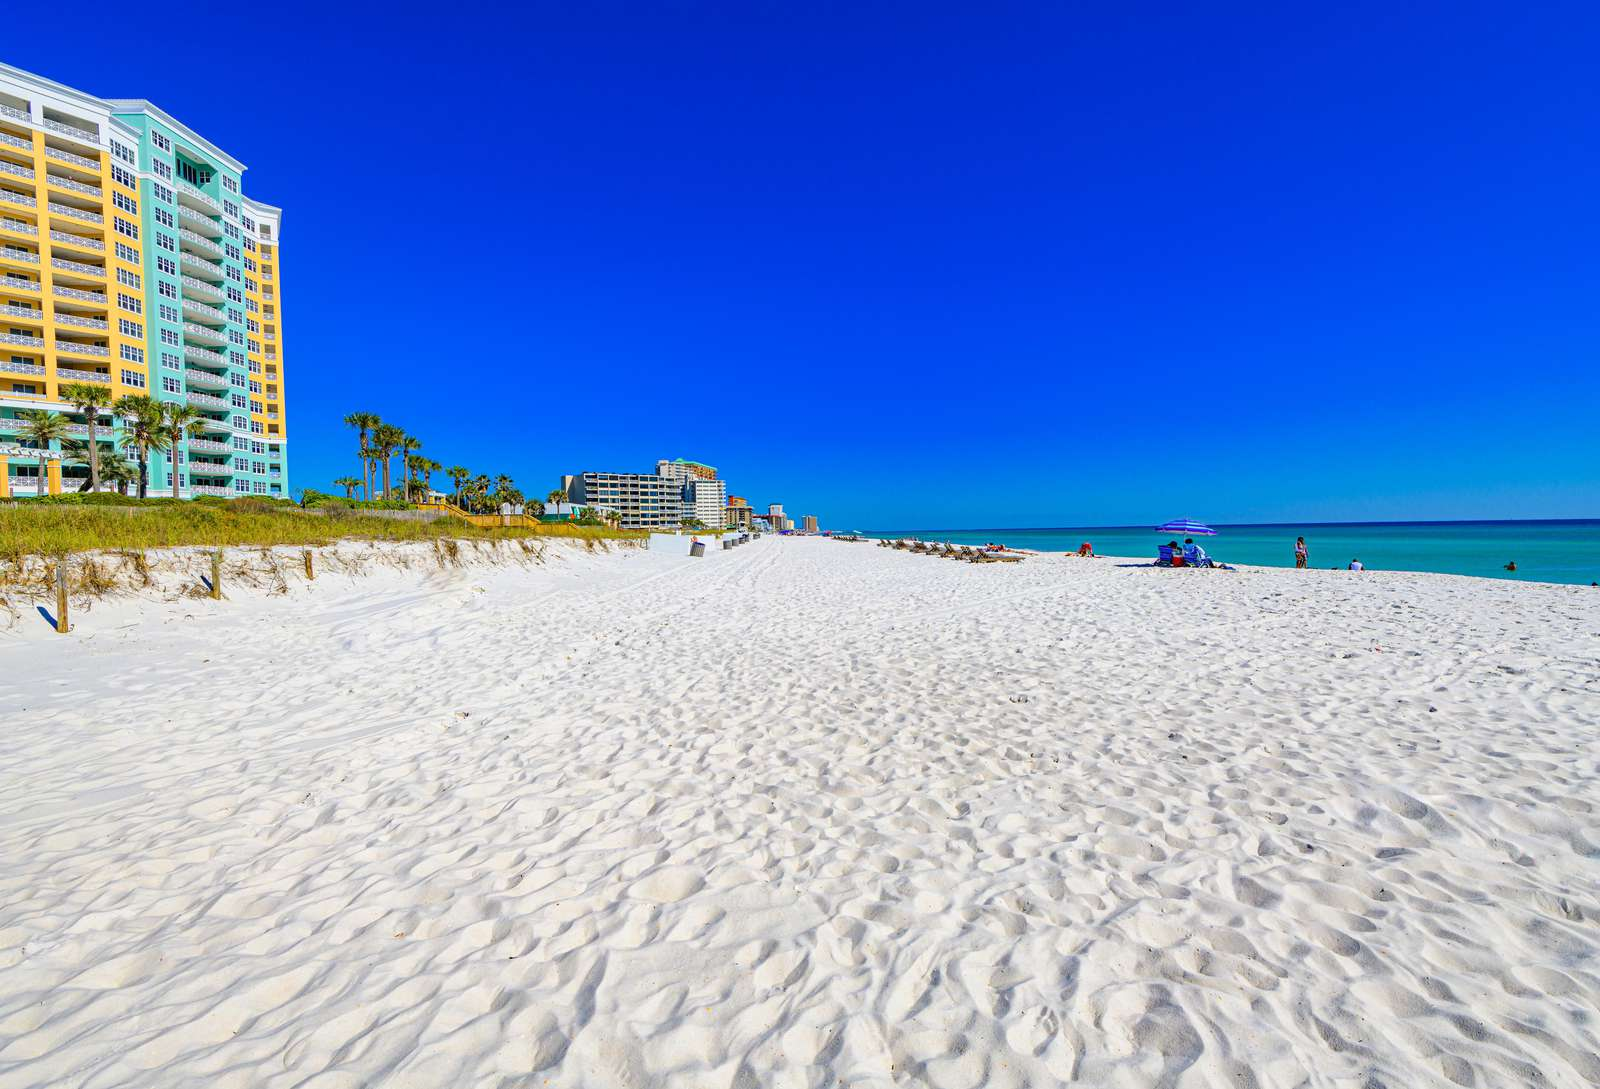 Once you hit the beach you'll never want to leave!